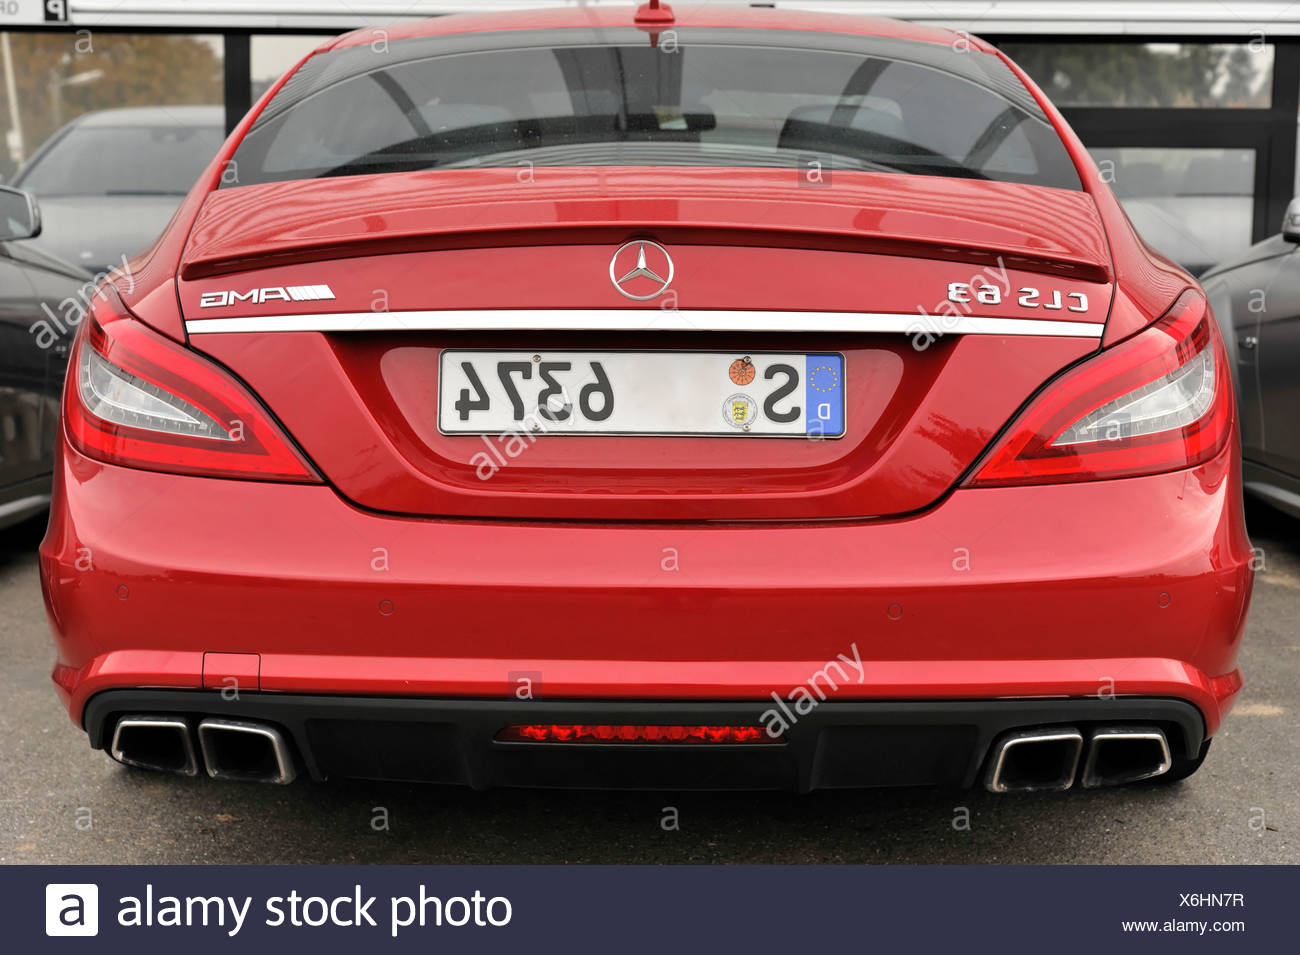 6.3, CLS 63, Mercedes-AMG, 514 hp - Stock Image